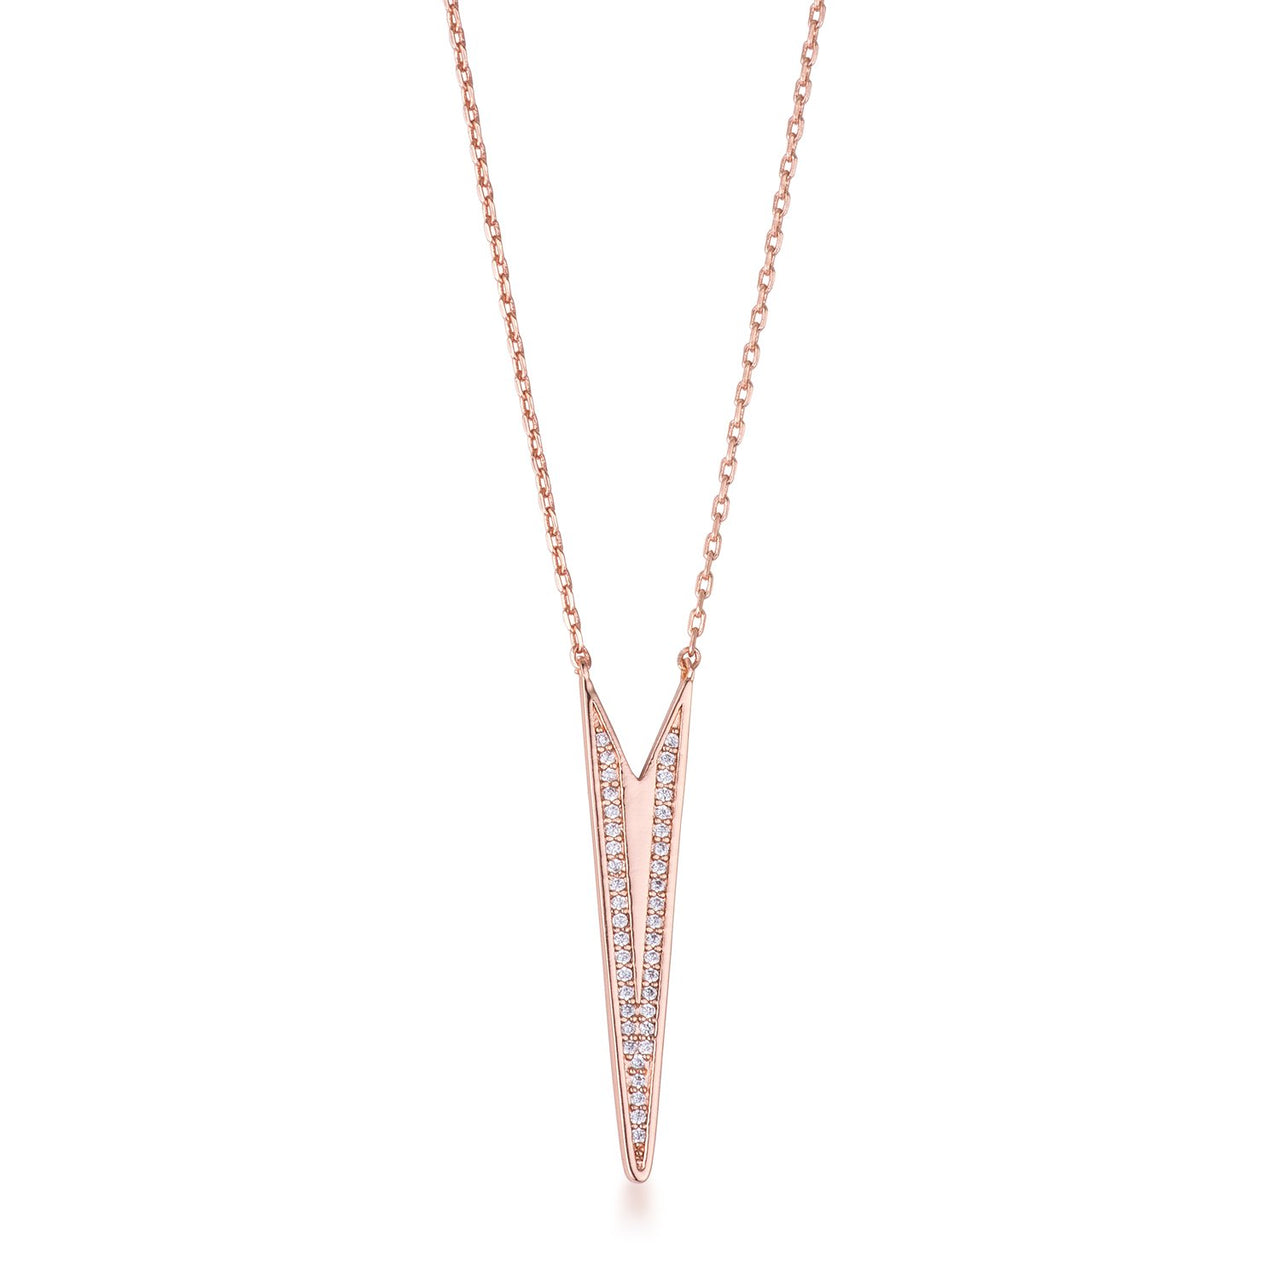 .2Ct Rose Gold Plated CZ Embedded Elongated Arrow Necklace - Necklaces - KA Designs Online